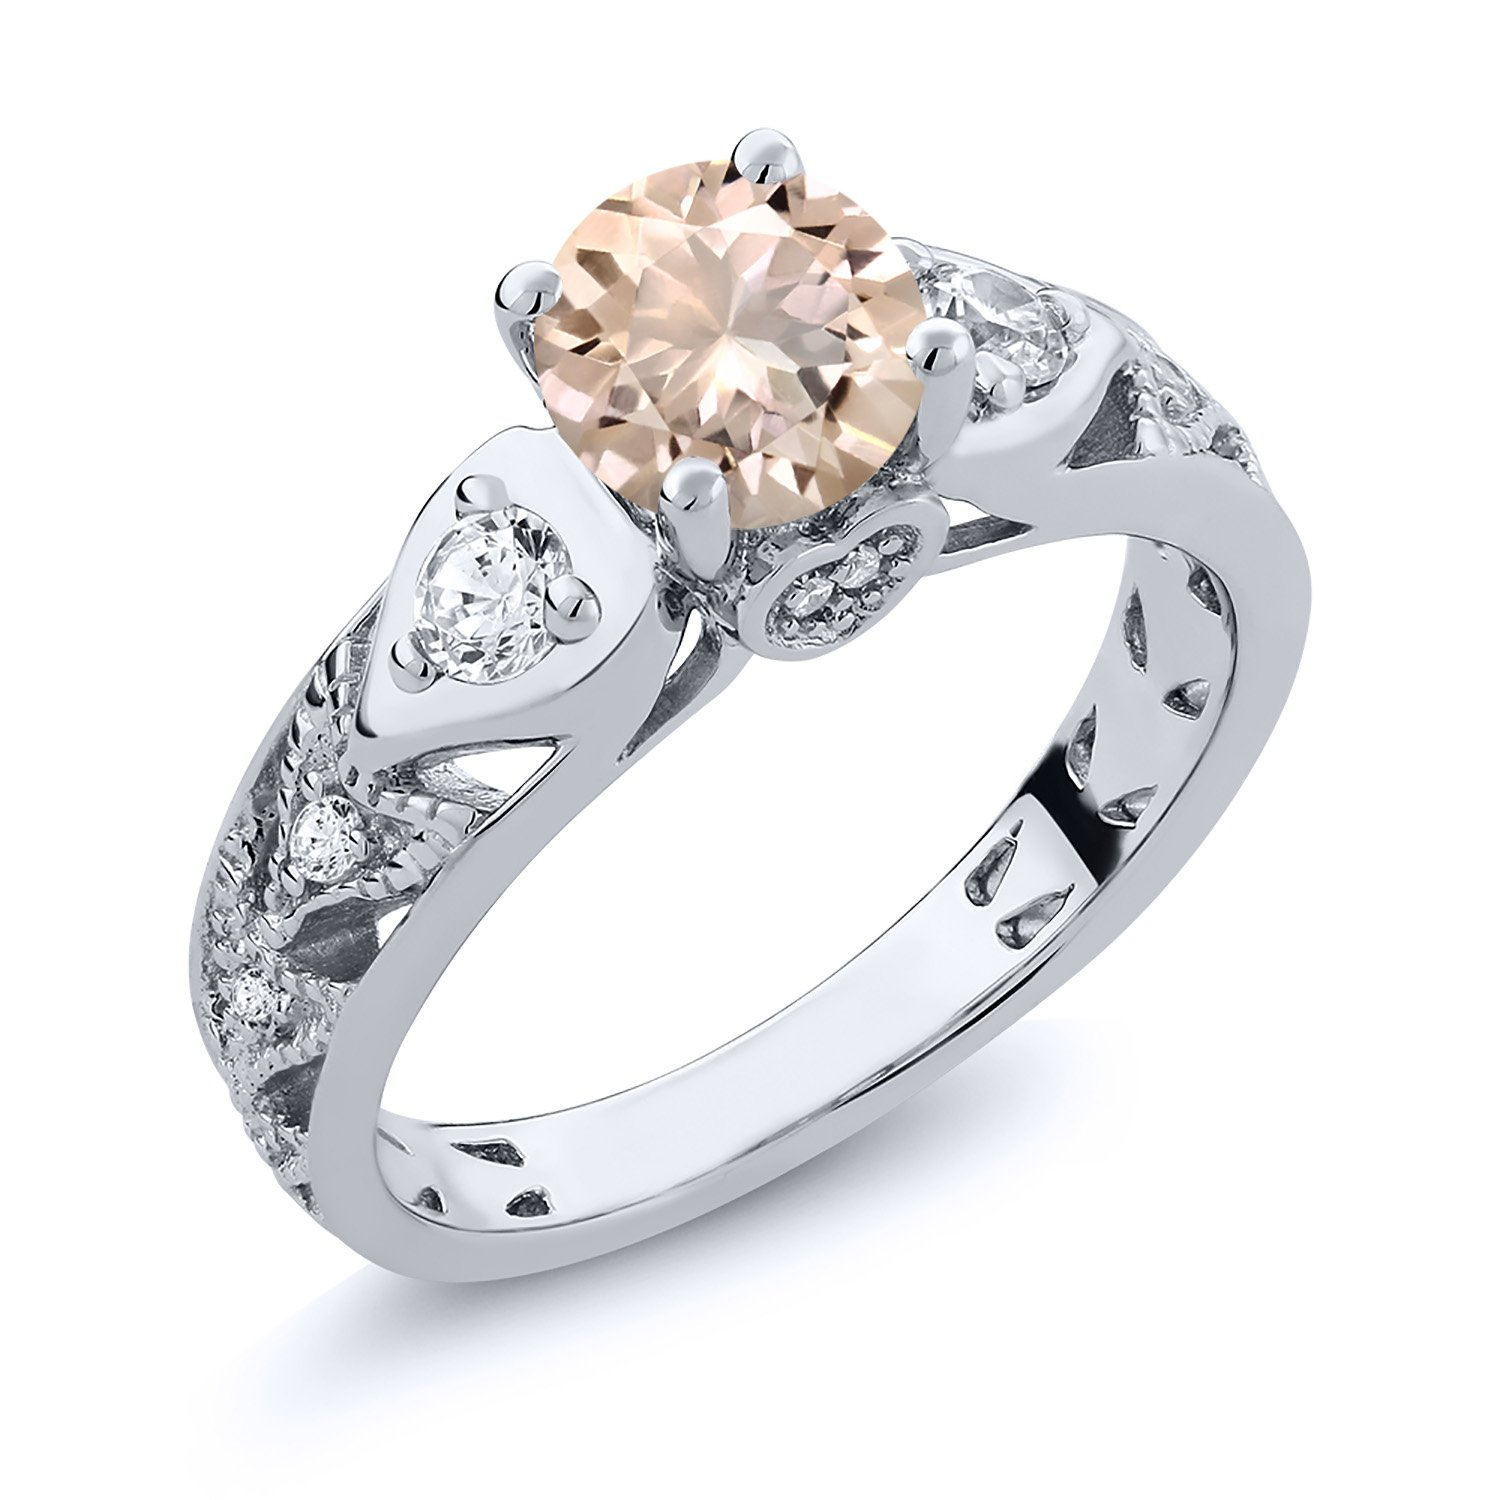 925 Sterling Silver Peach Morganite Women's Ring 1.86 Ctw Round (Size 6)